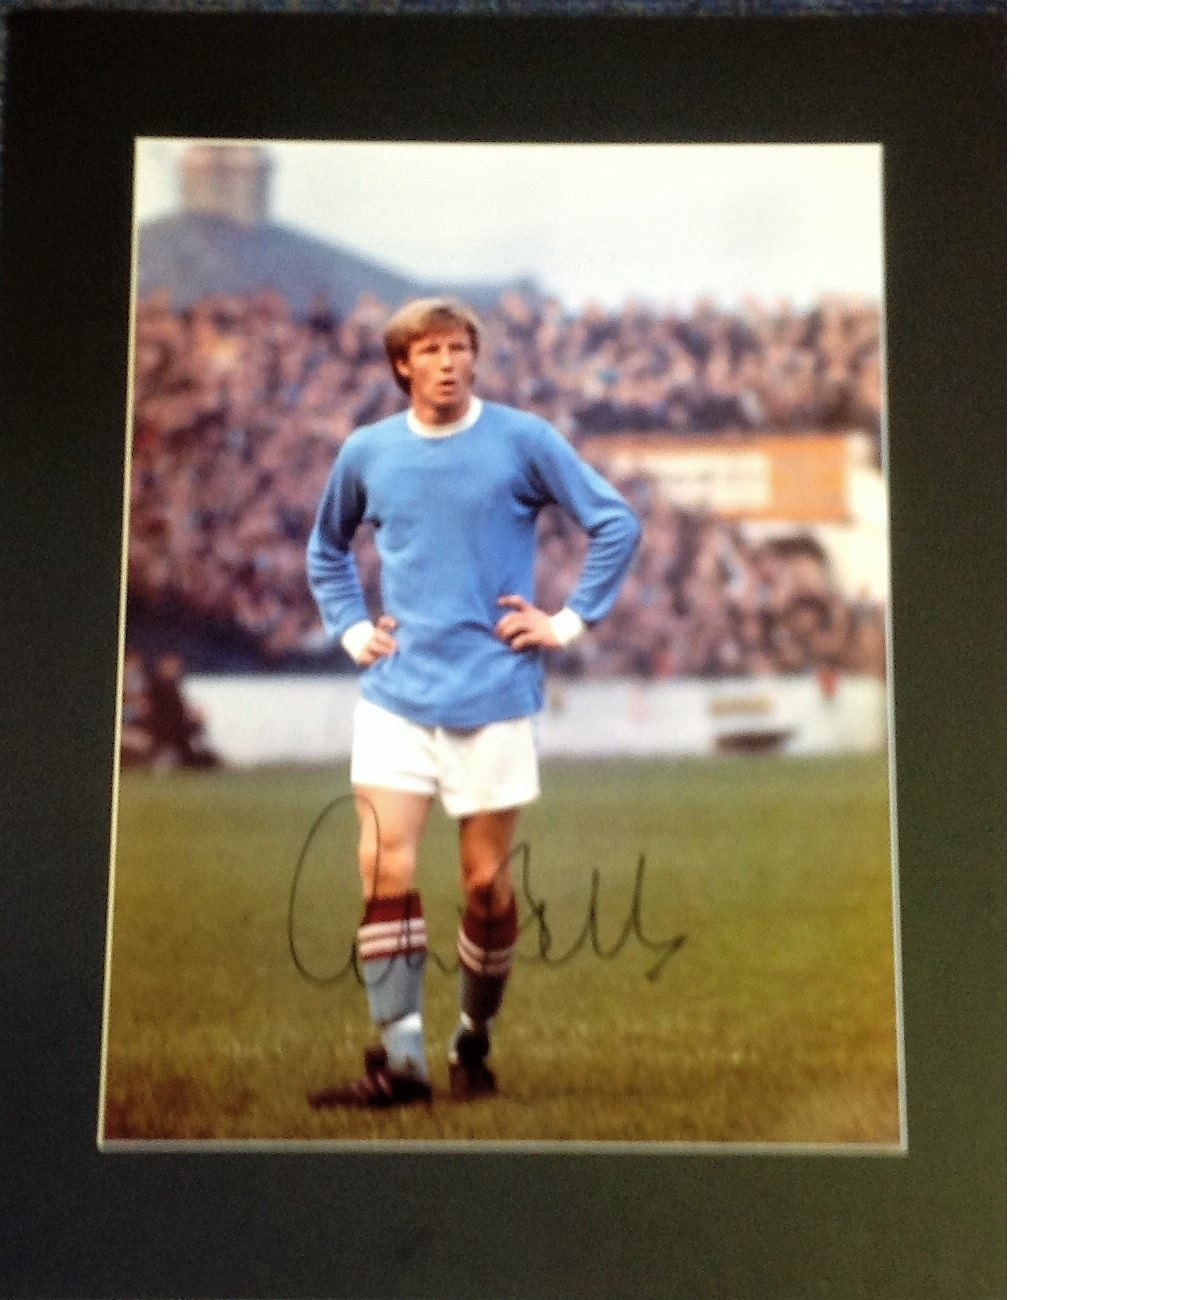 Lot 50 - Football Colin Bell 20x16 signed mounted colour photo pictured in Manchester City kit. Bell played